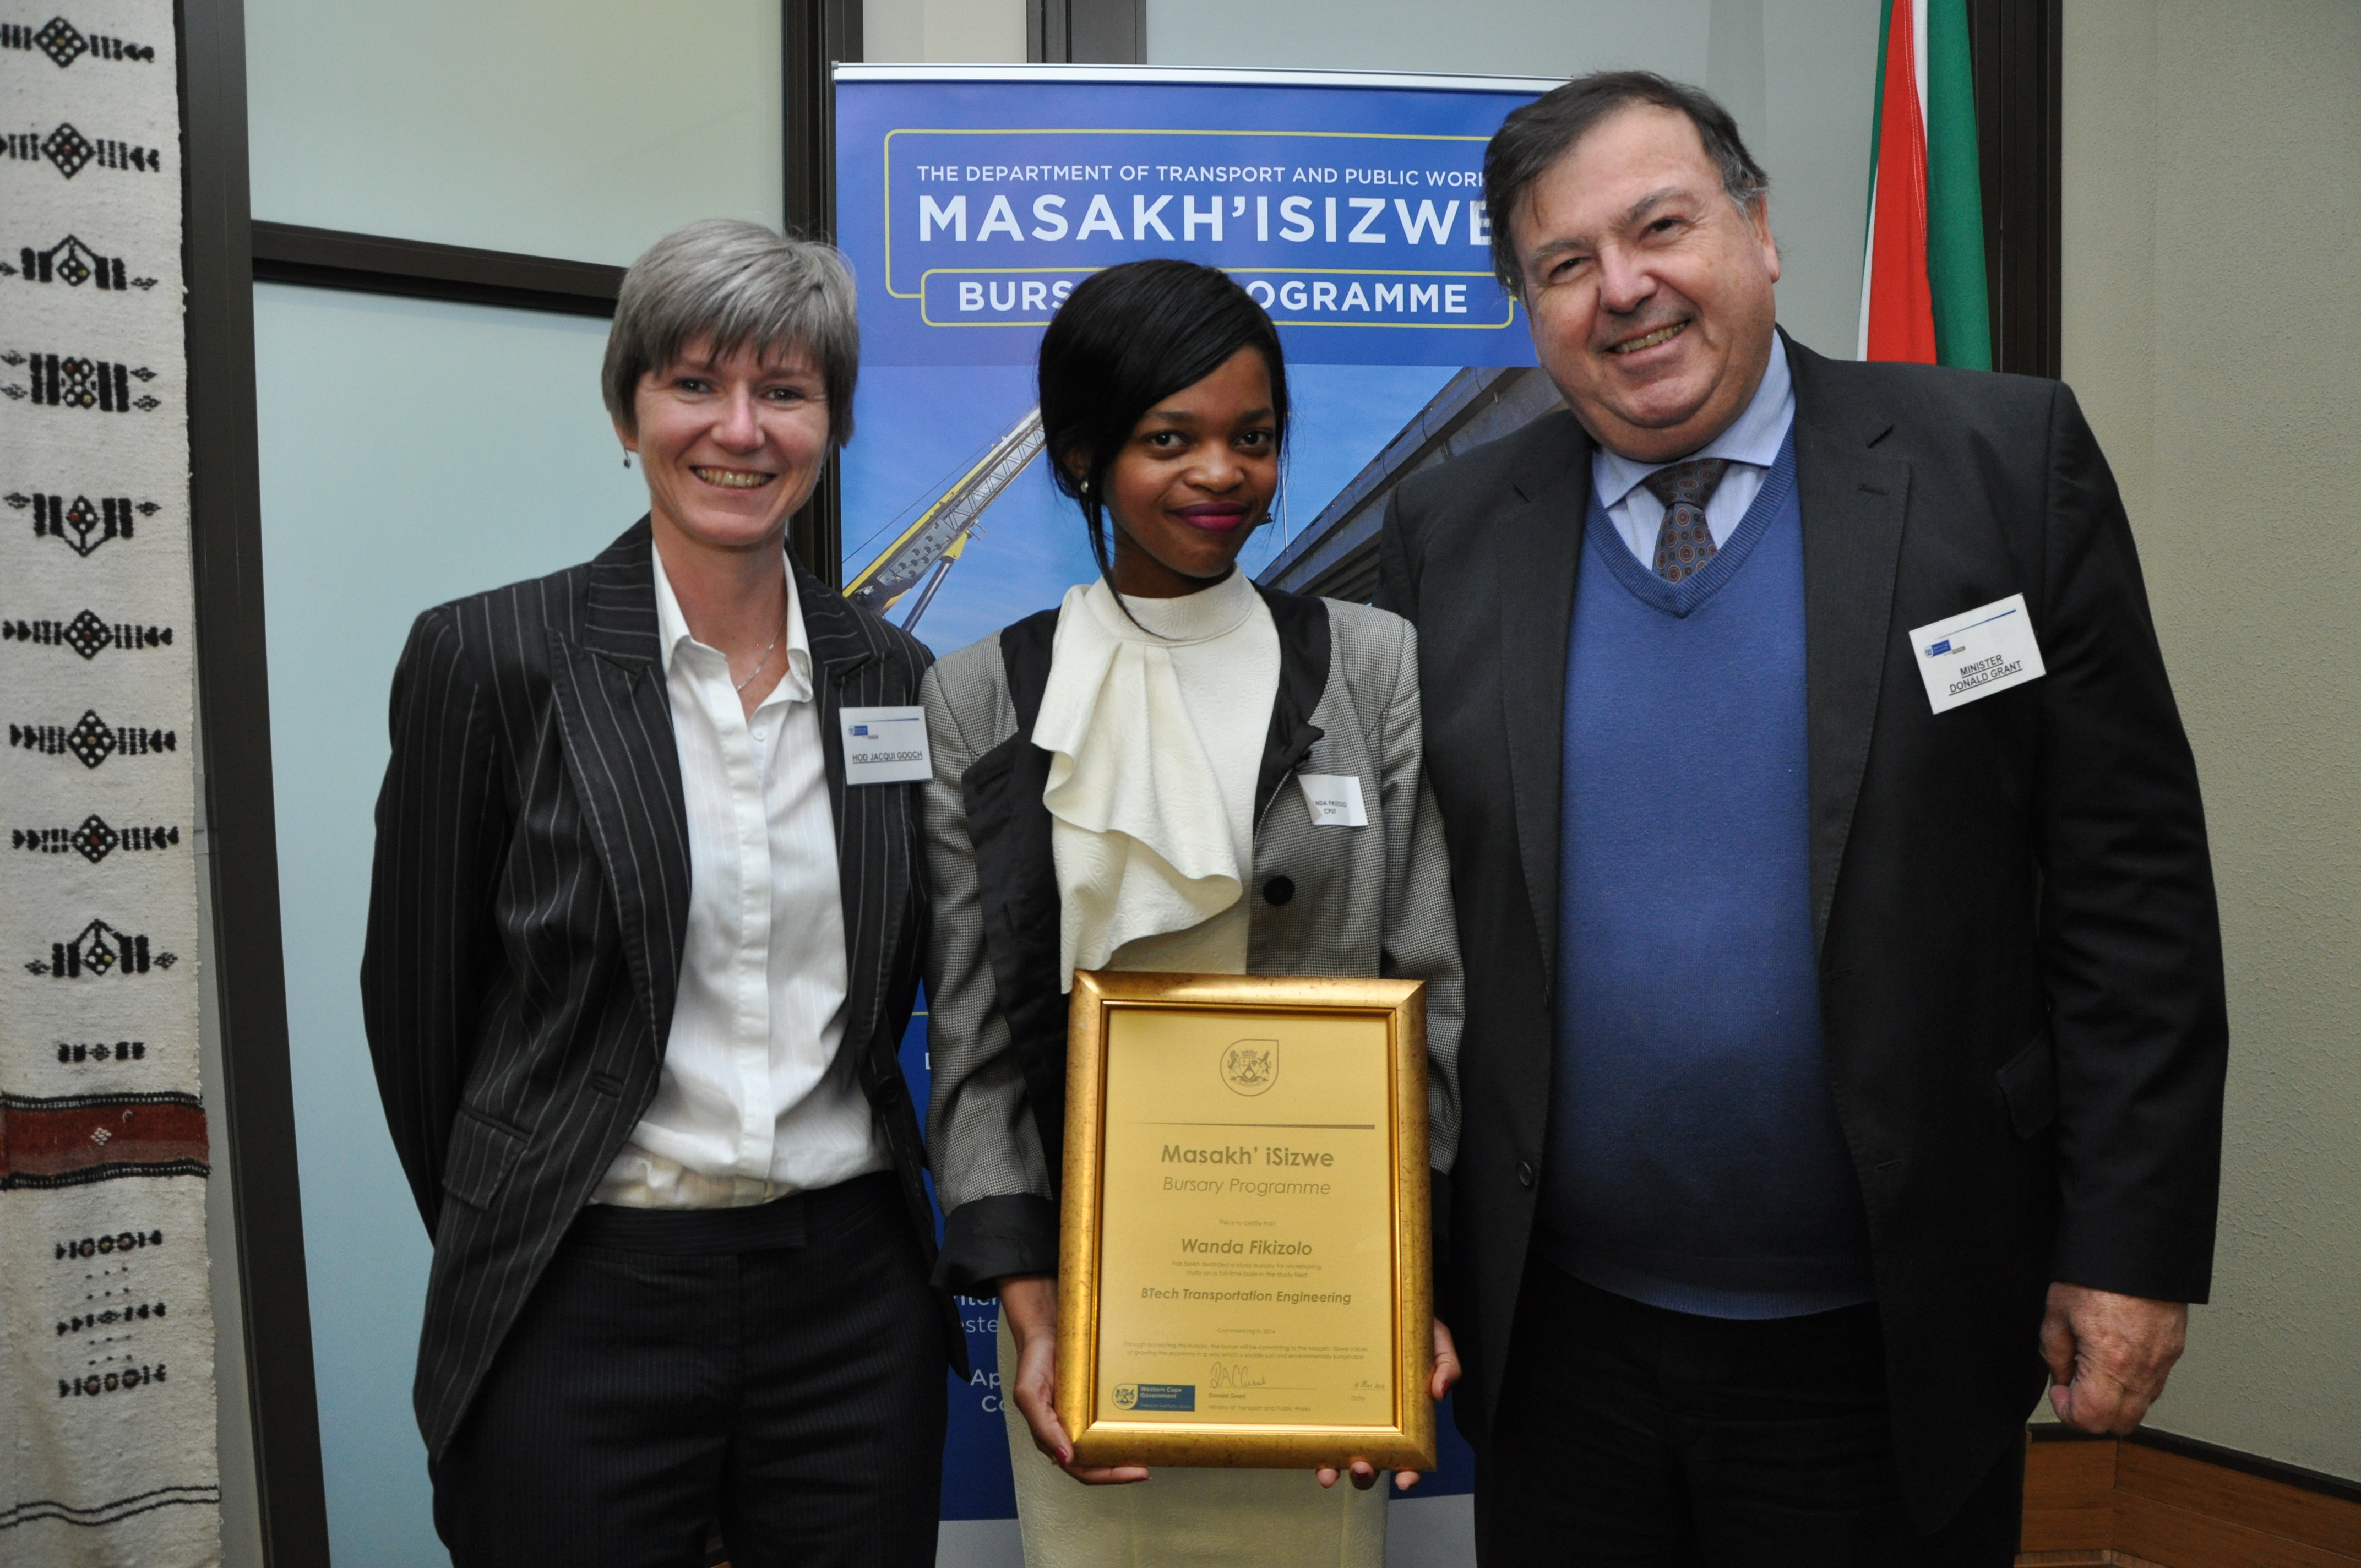 Minister Grant and HOD Gooch with Miss Wanda Fikizolo from Khayelitsha. Miss Fikizolo is currently studying a BTech in Transport Engineering at the Cape Peninsula University of Technology (CPUT).